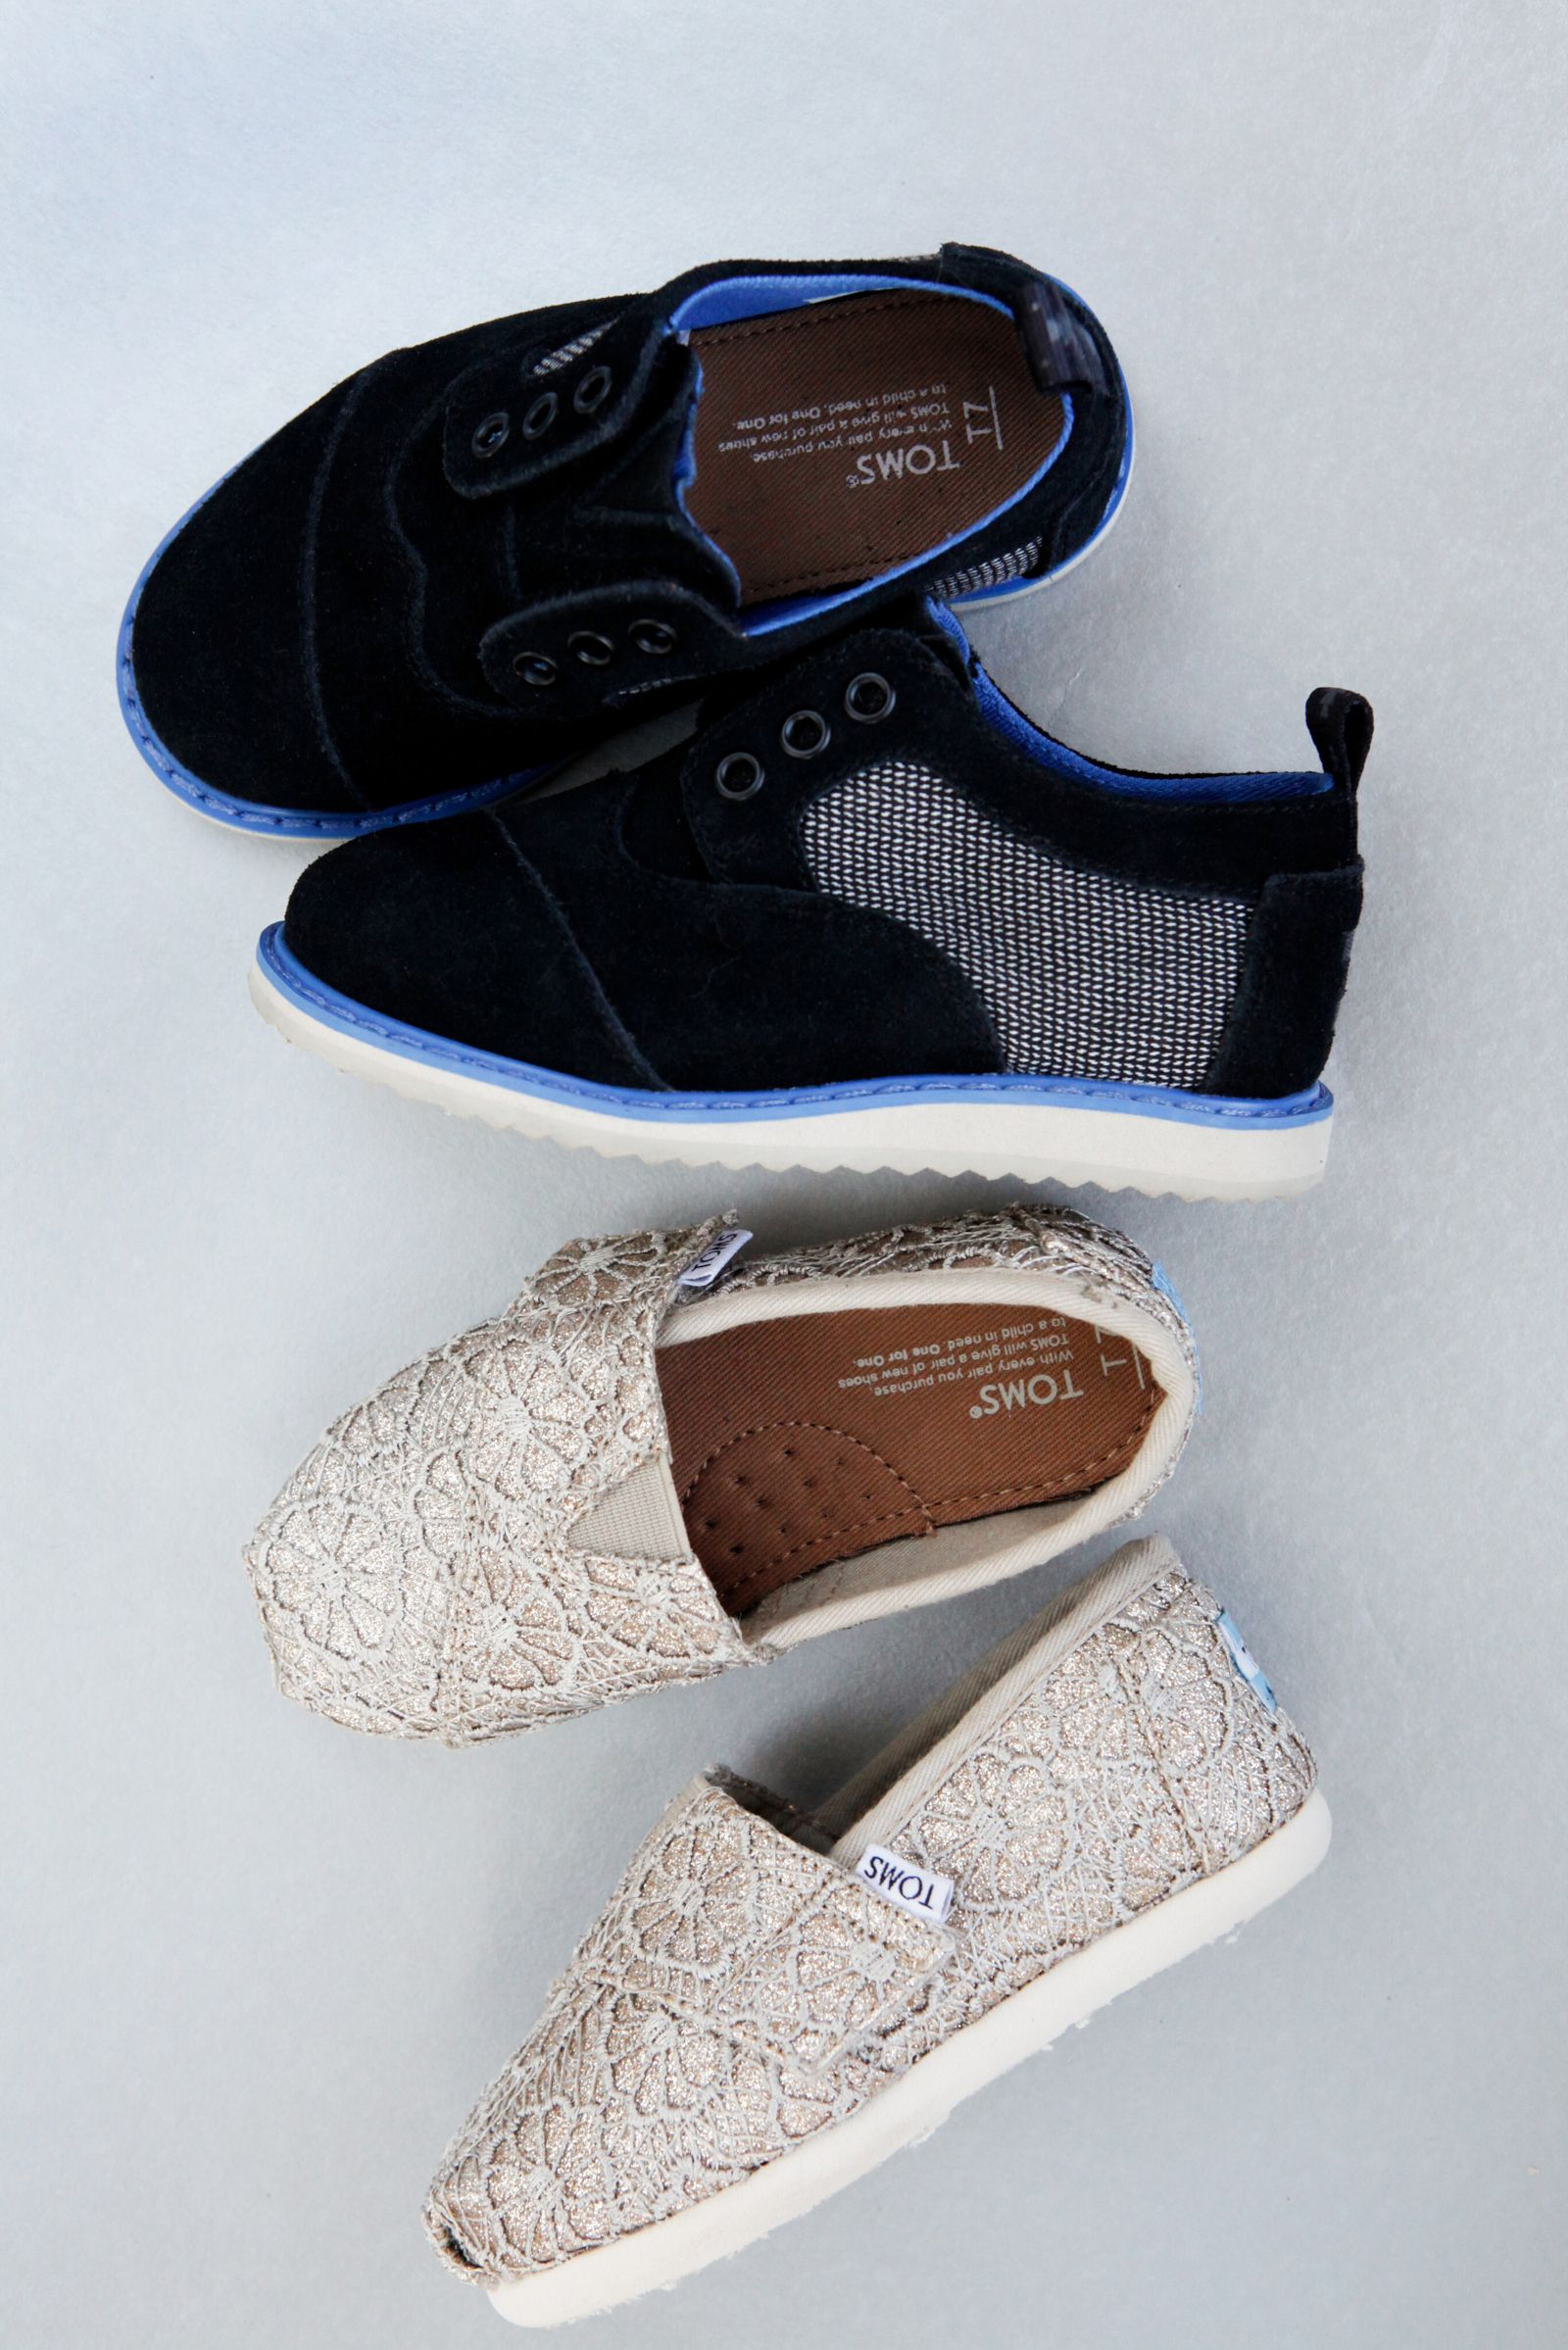 Kids shoe stores, Toms shoes outfits